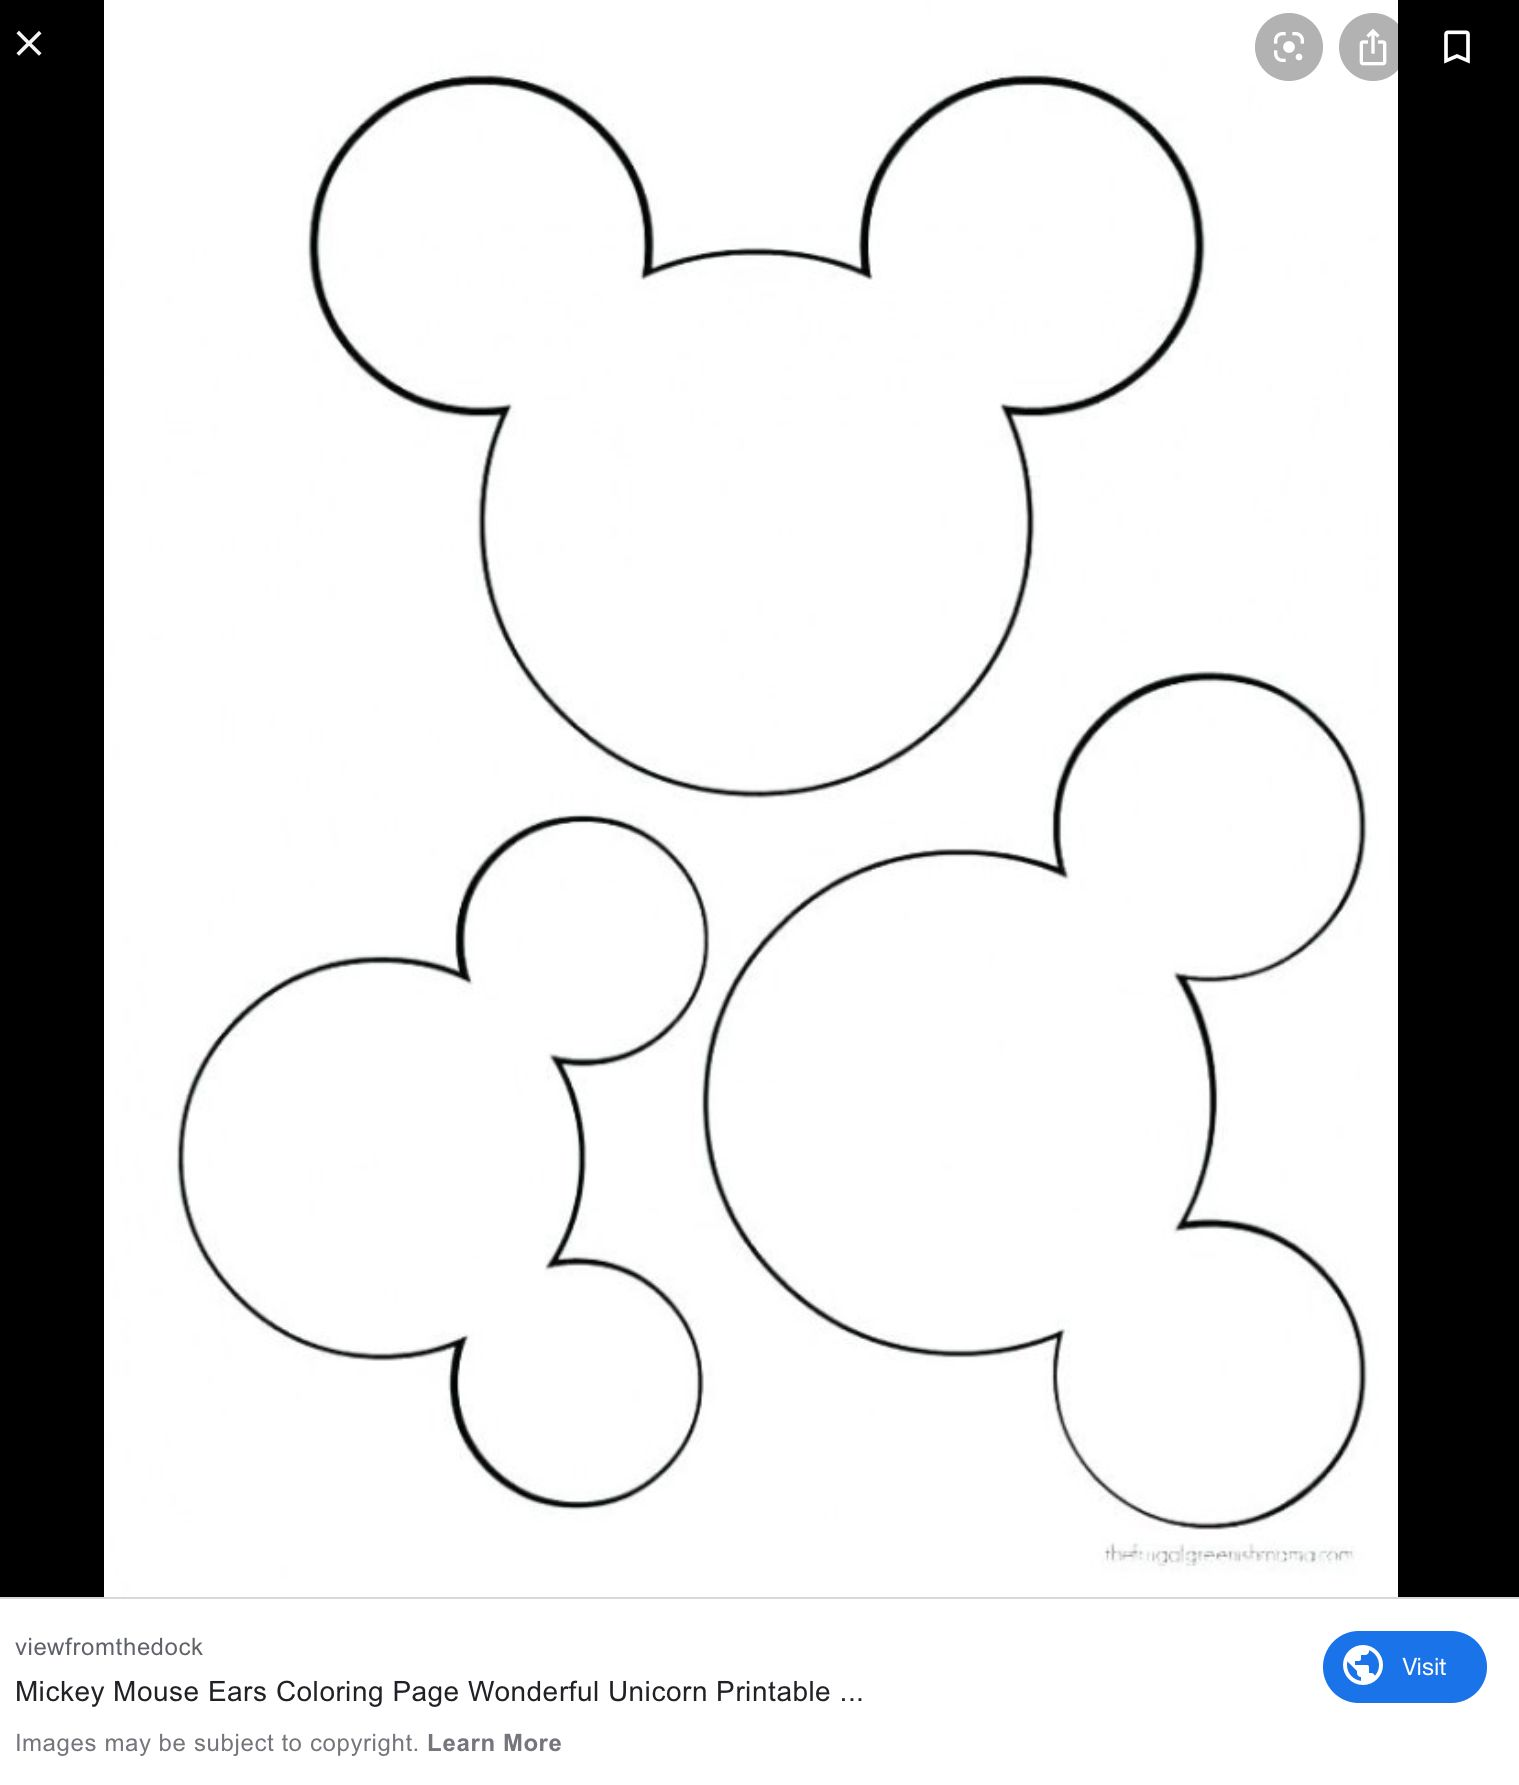 Pin By Patti Bassignani On Quilting Unicorn Printables Coloring Pages Mickey Mouse Ears